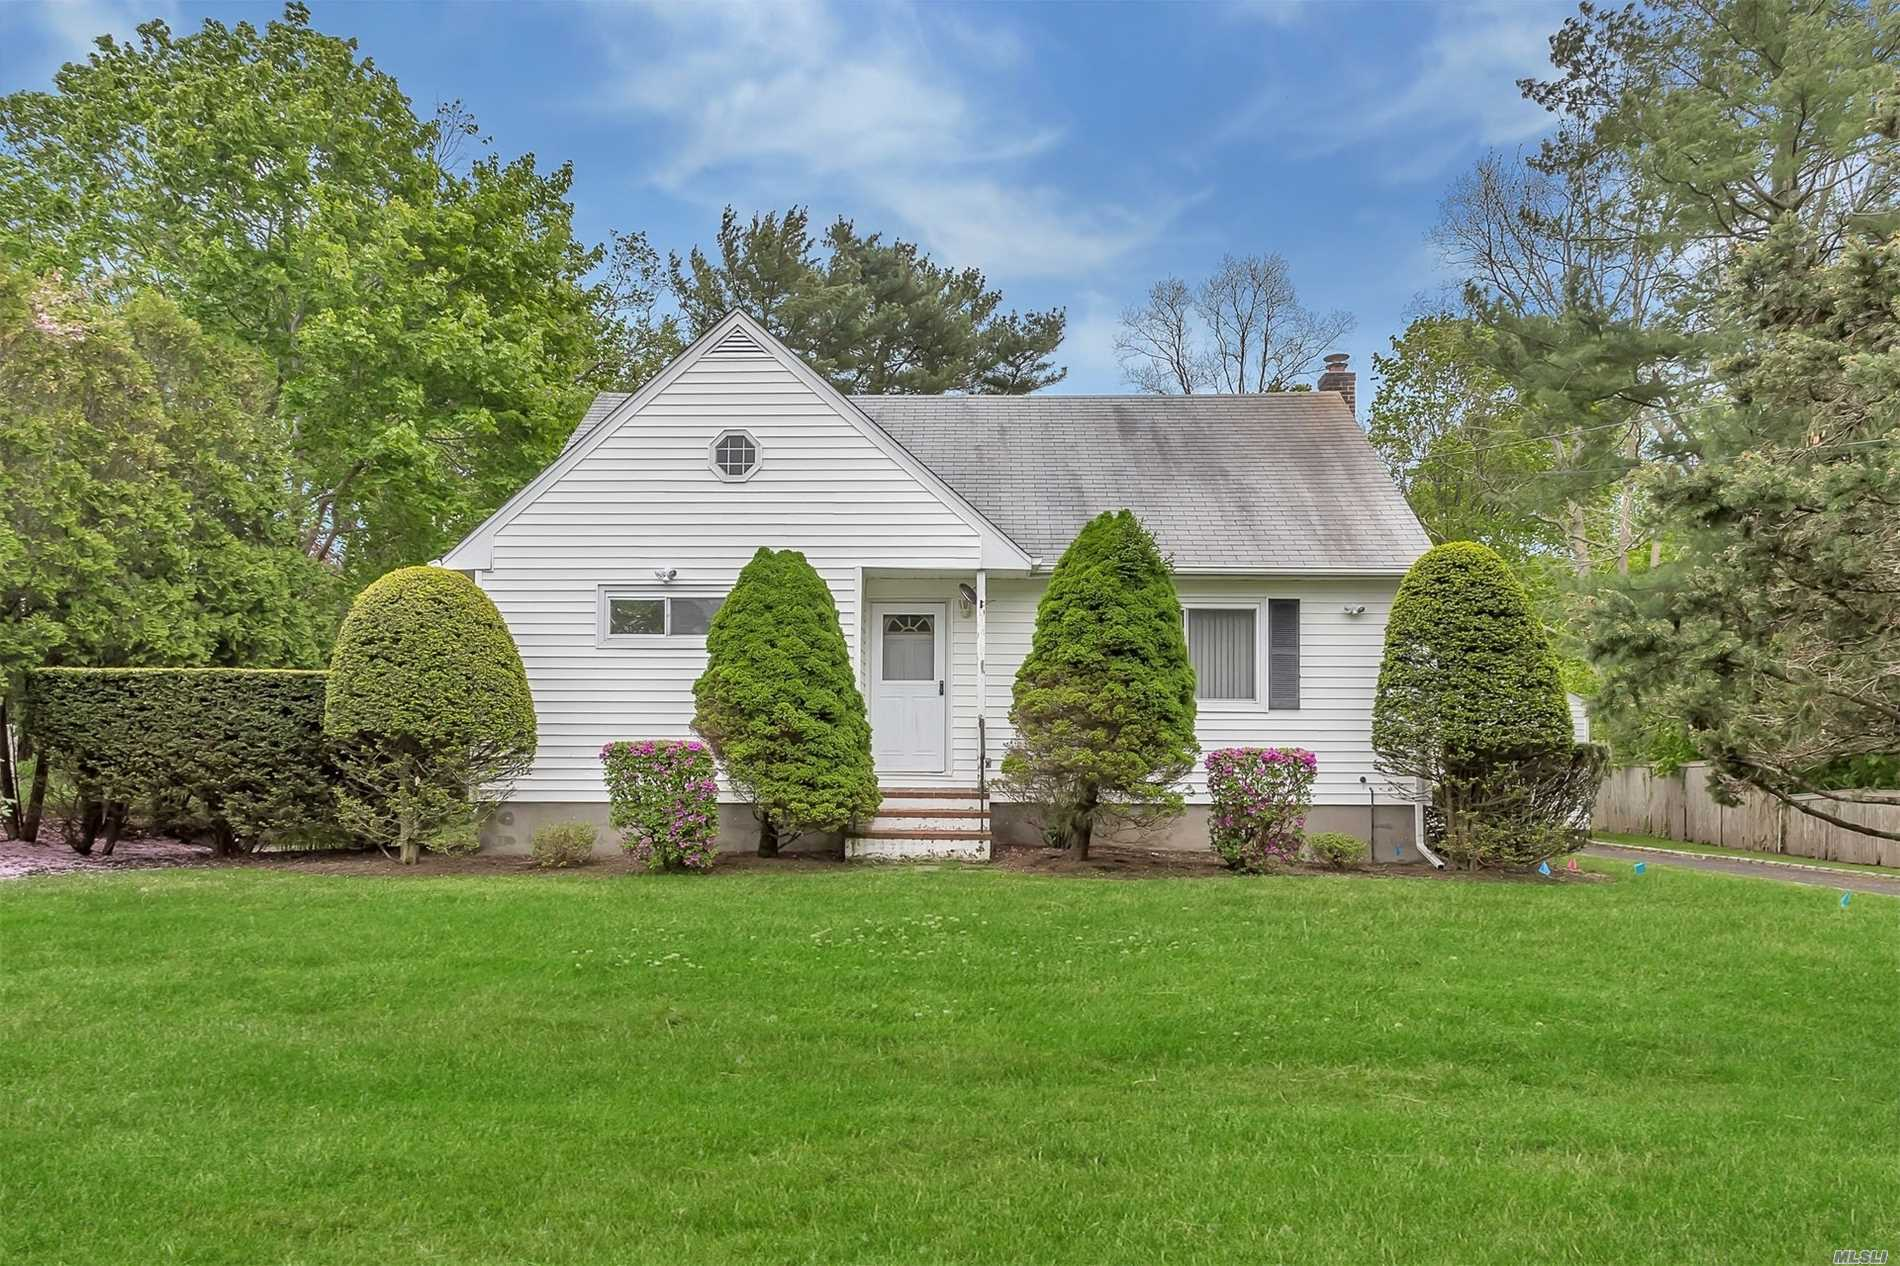 Charming Rear Dormer Cape- Set On Sprawling Nearly Half Acre - Close To Shopping And Handicap Accessible. Detached Garagetaxes W.Star $9381.71